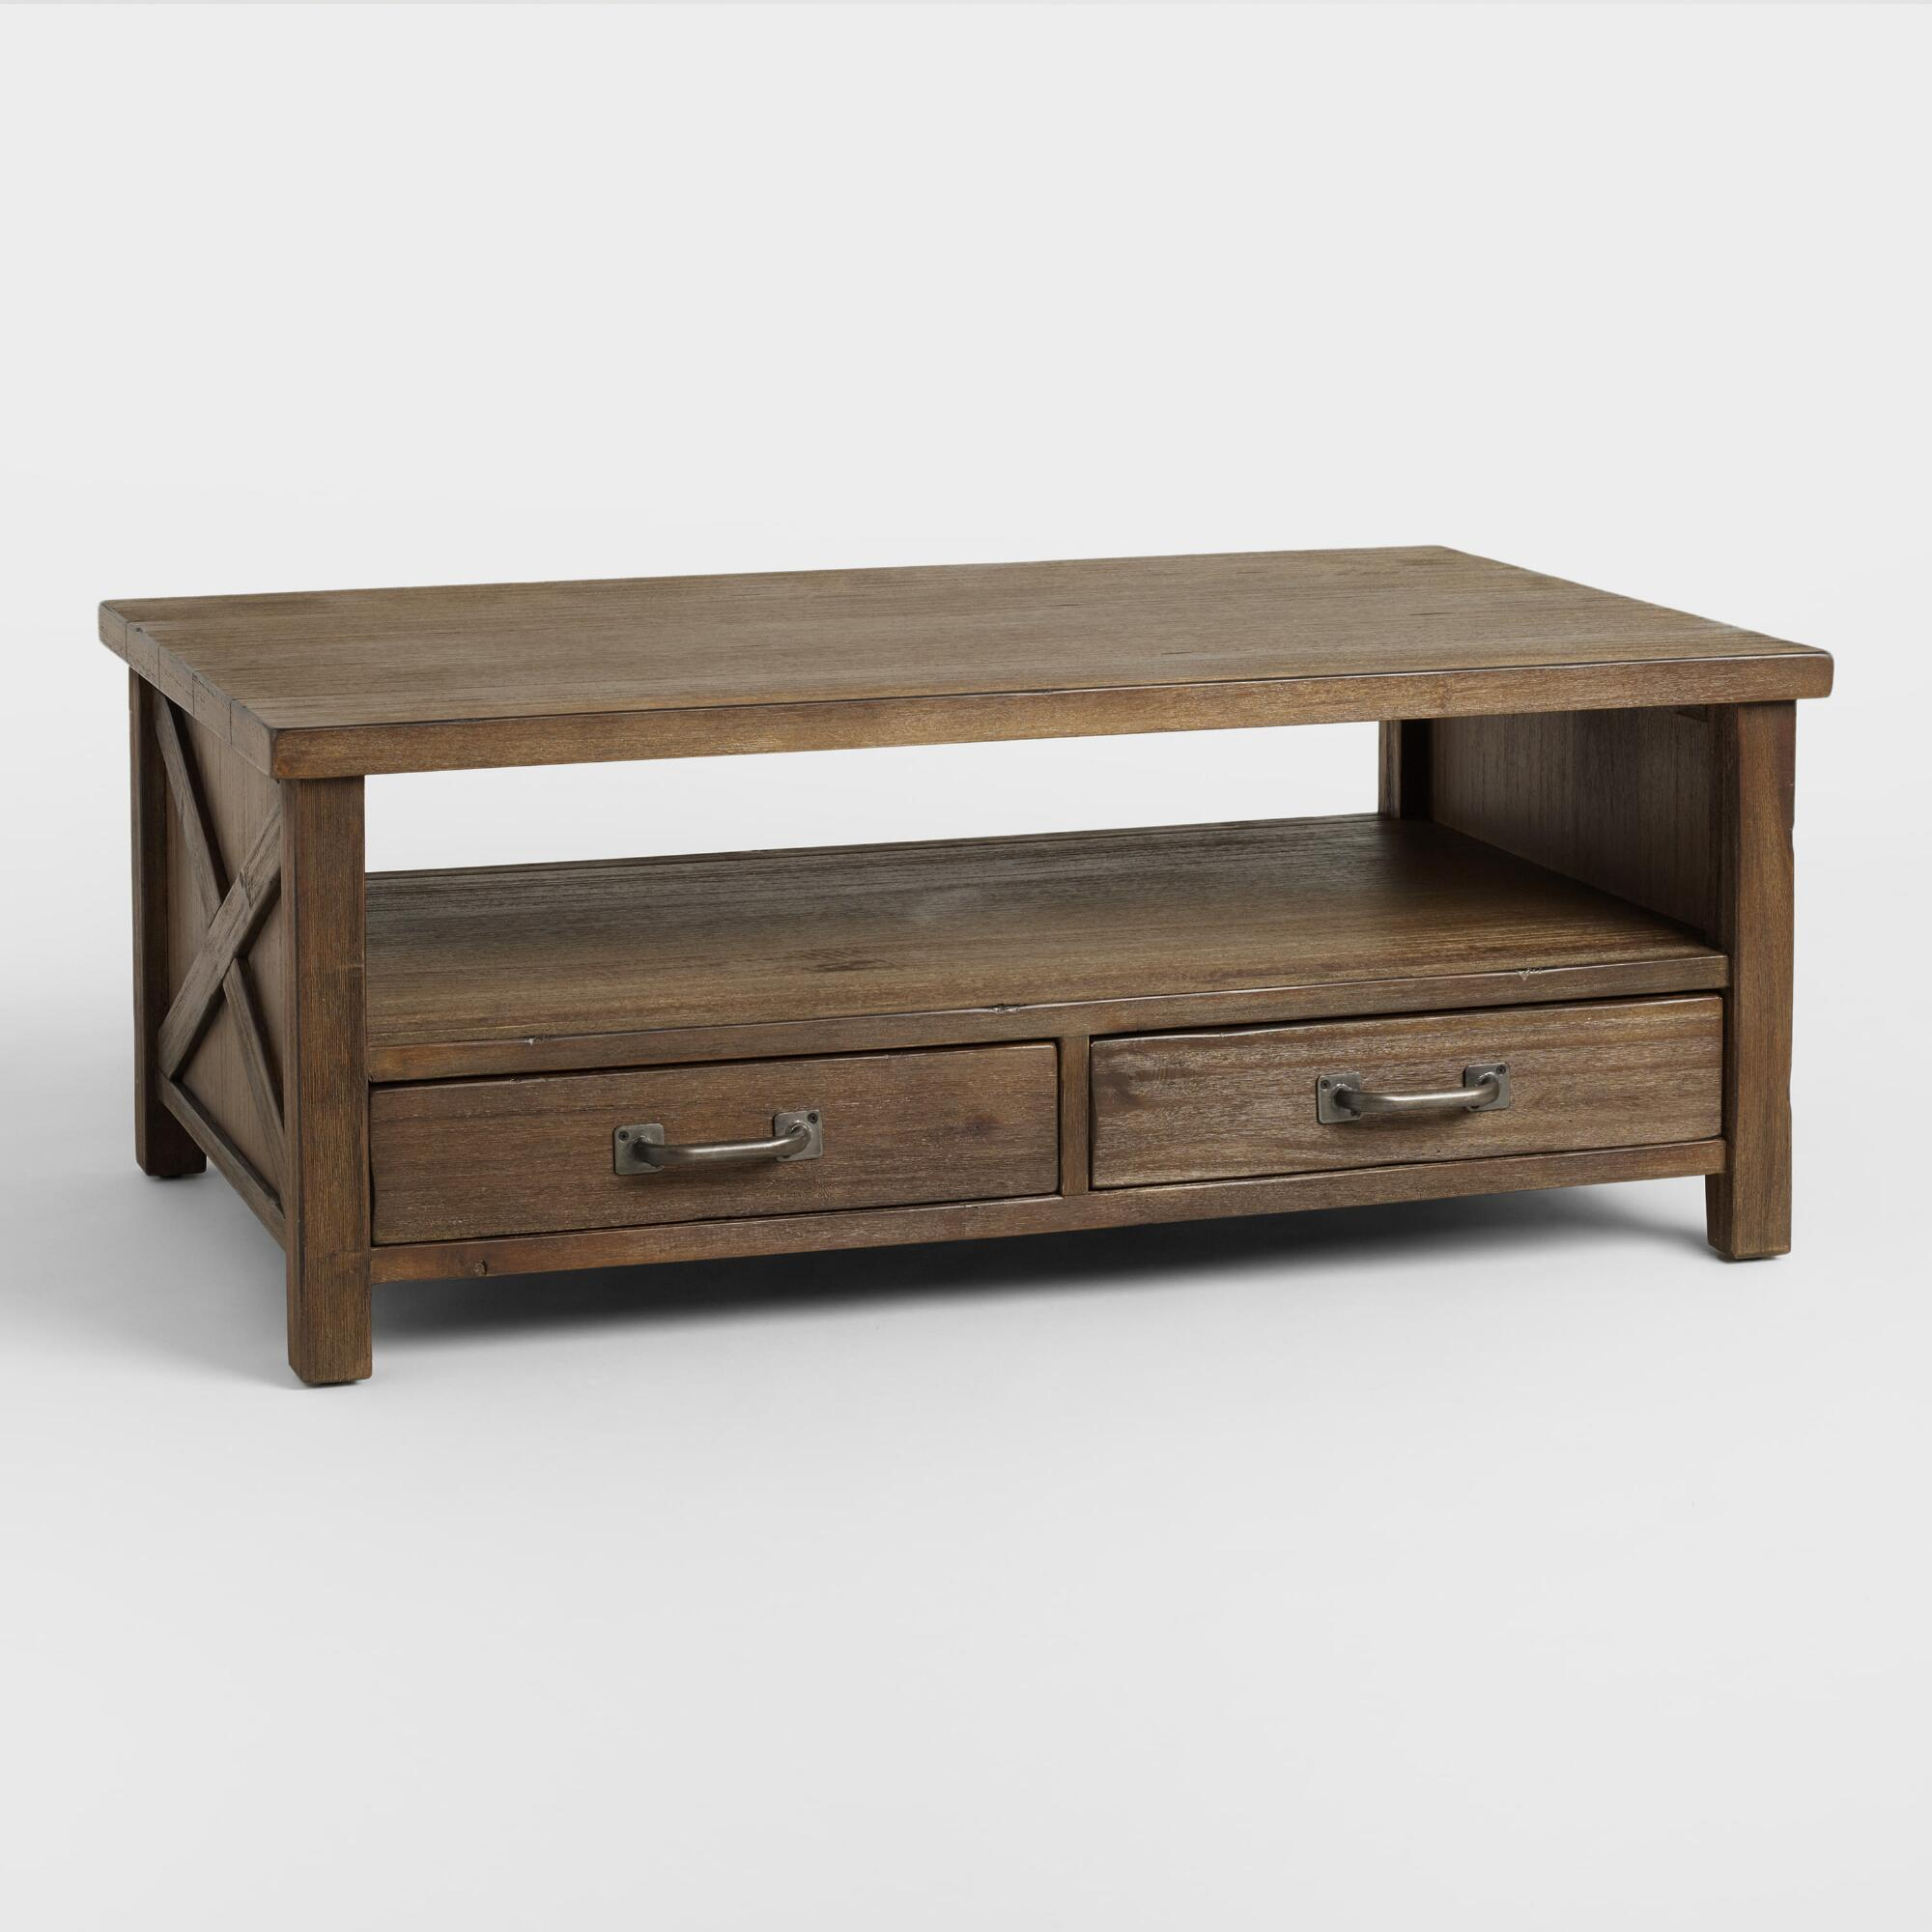 World market sofa table chloe furniture collection world market thesofa Console coffee table